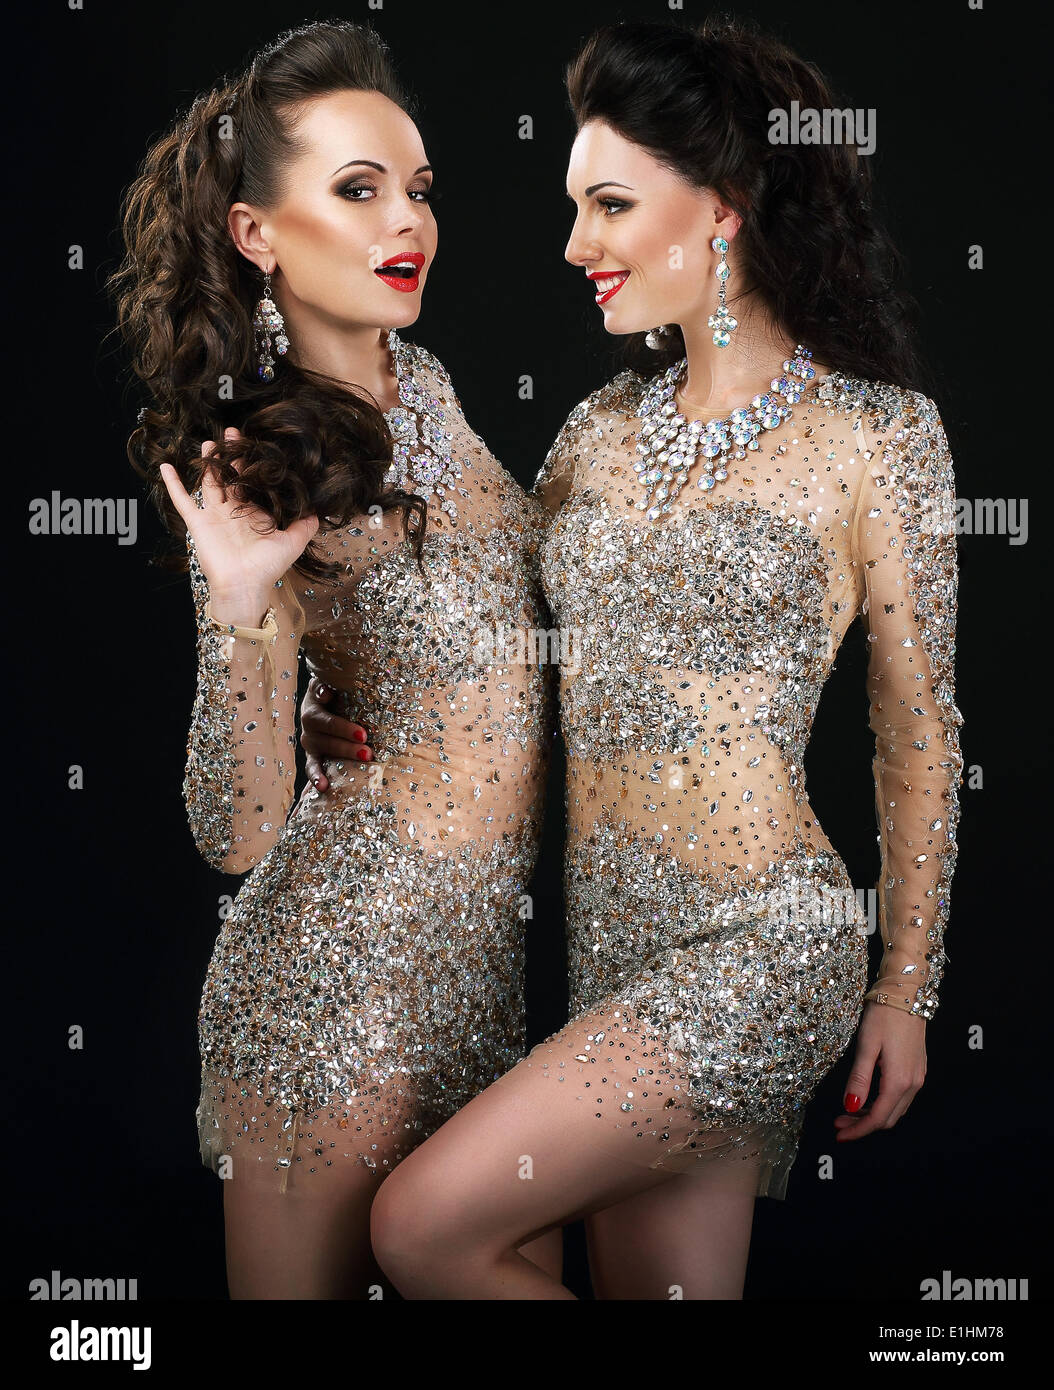 Excited Glamorous Couple in Platinum Dresses Talking - Stock Image